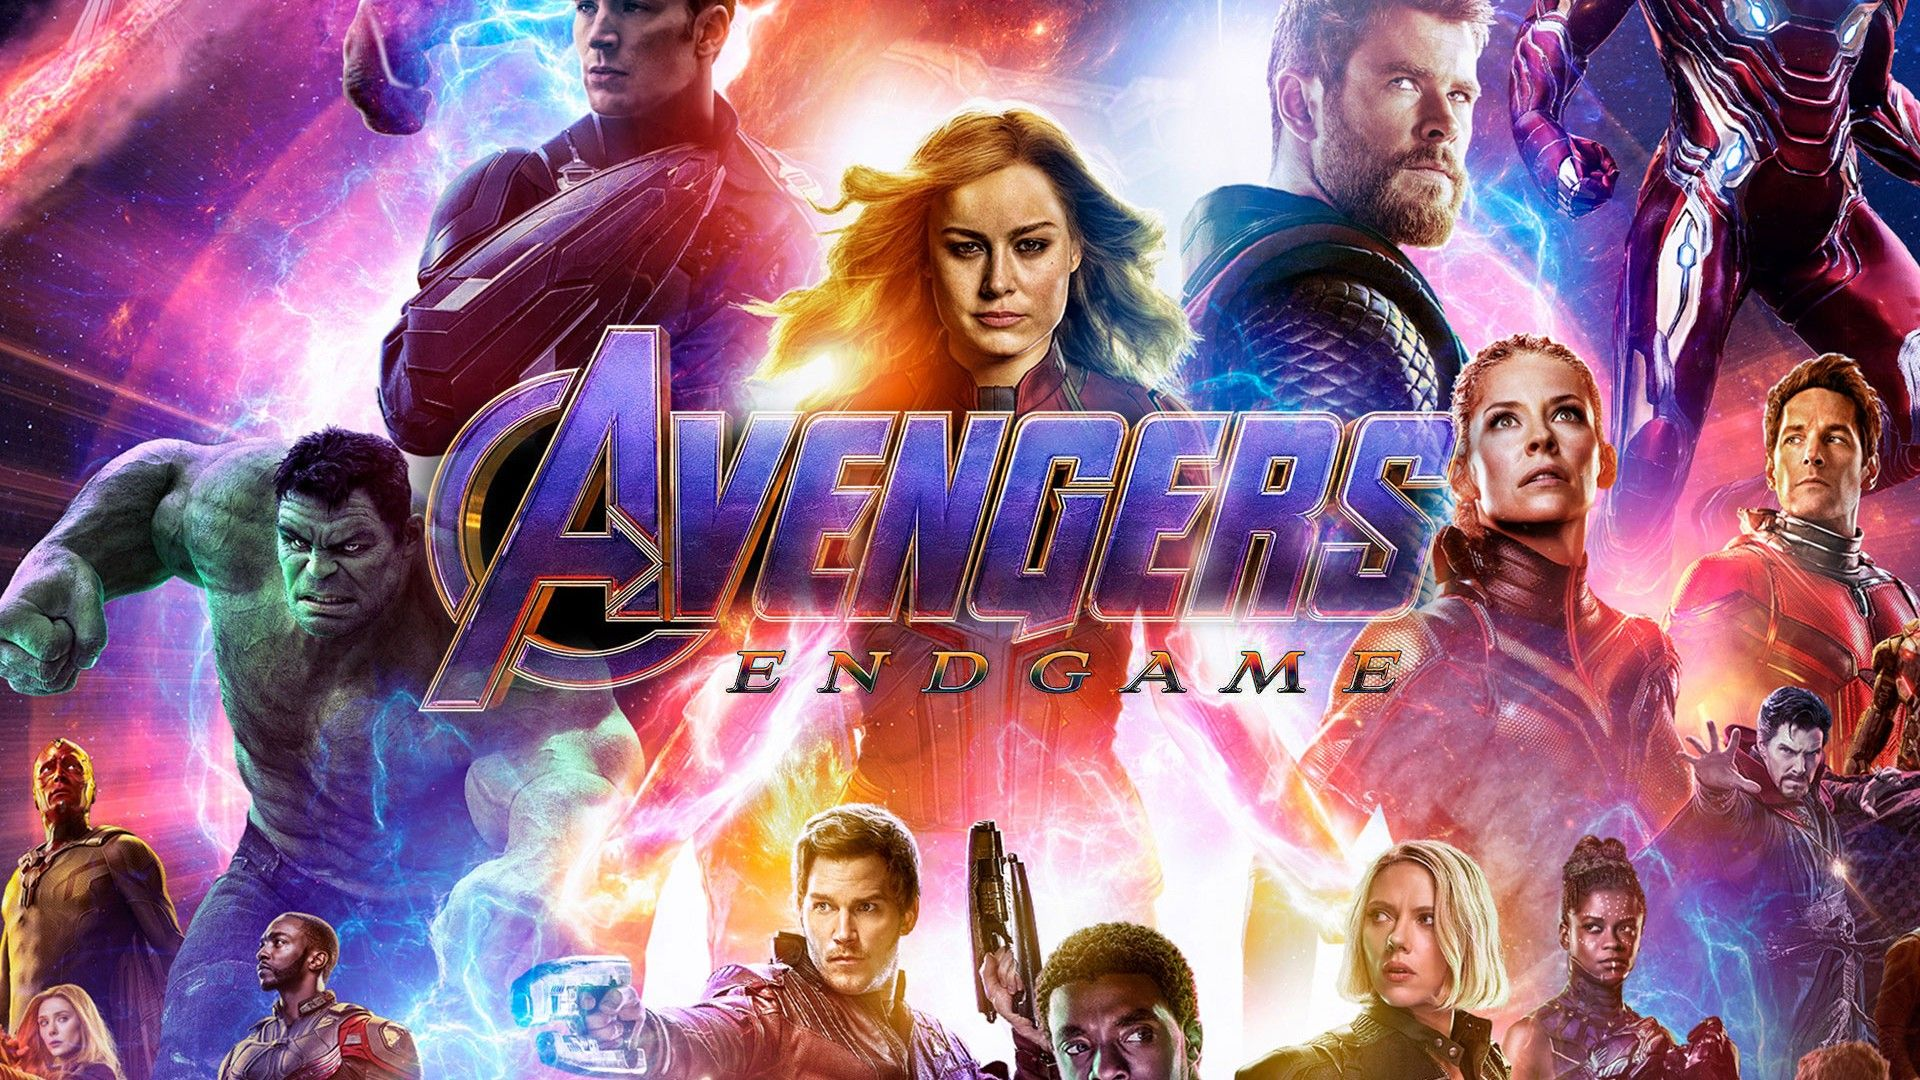 Avengers Endgame 2019 Poster Wallpaper Best Movie Poster Wallpaper Hd Avengers Movie Posters Best Movie Posters